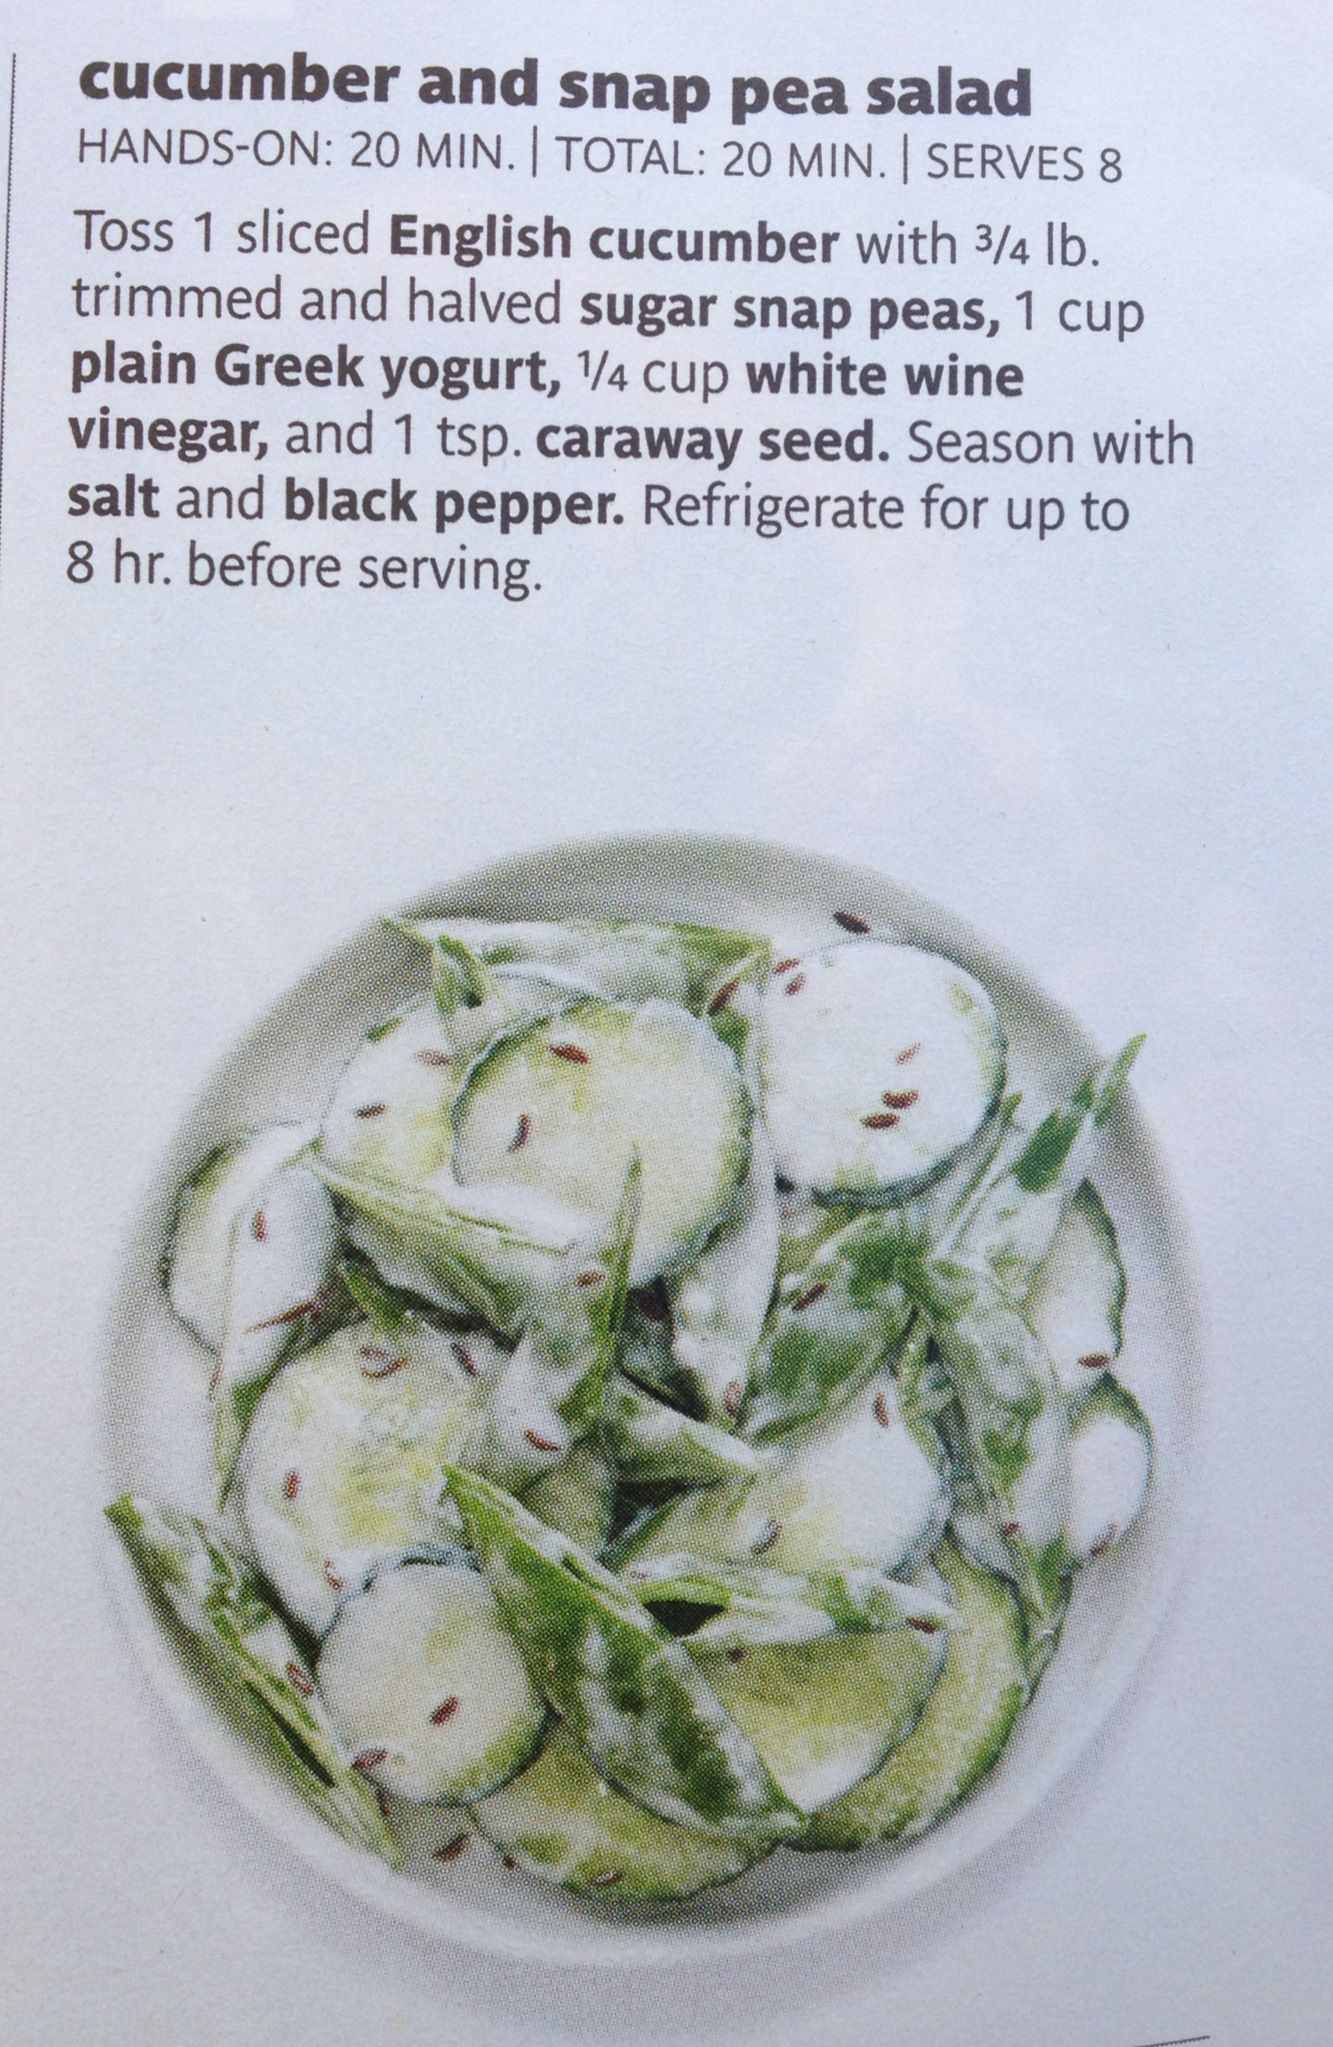 Cucumber and snap pea salad | meal ideas | Pinterest